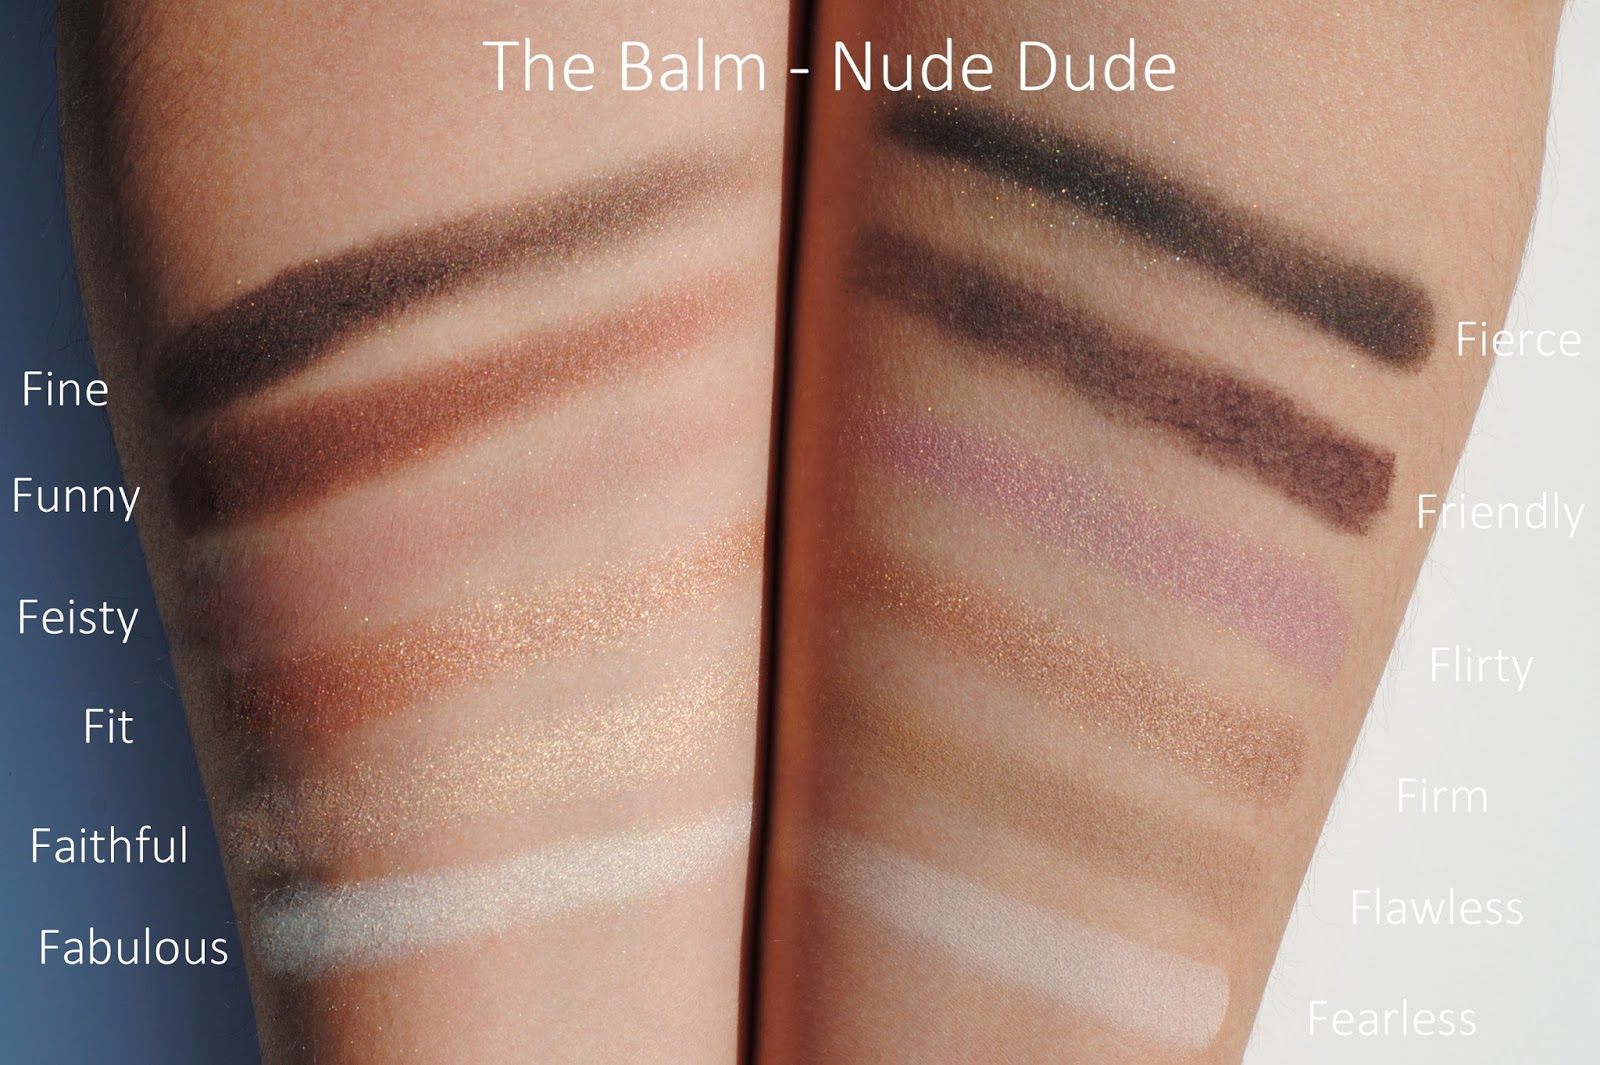 the balm nude dude fearless flawless firm flirty friendly fierce fabulous faithful fit feisty funny fine swatches